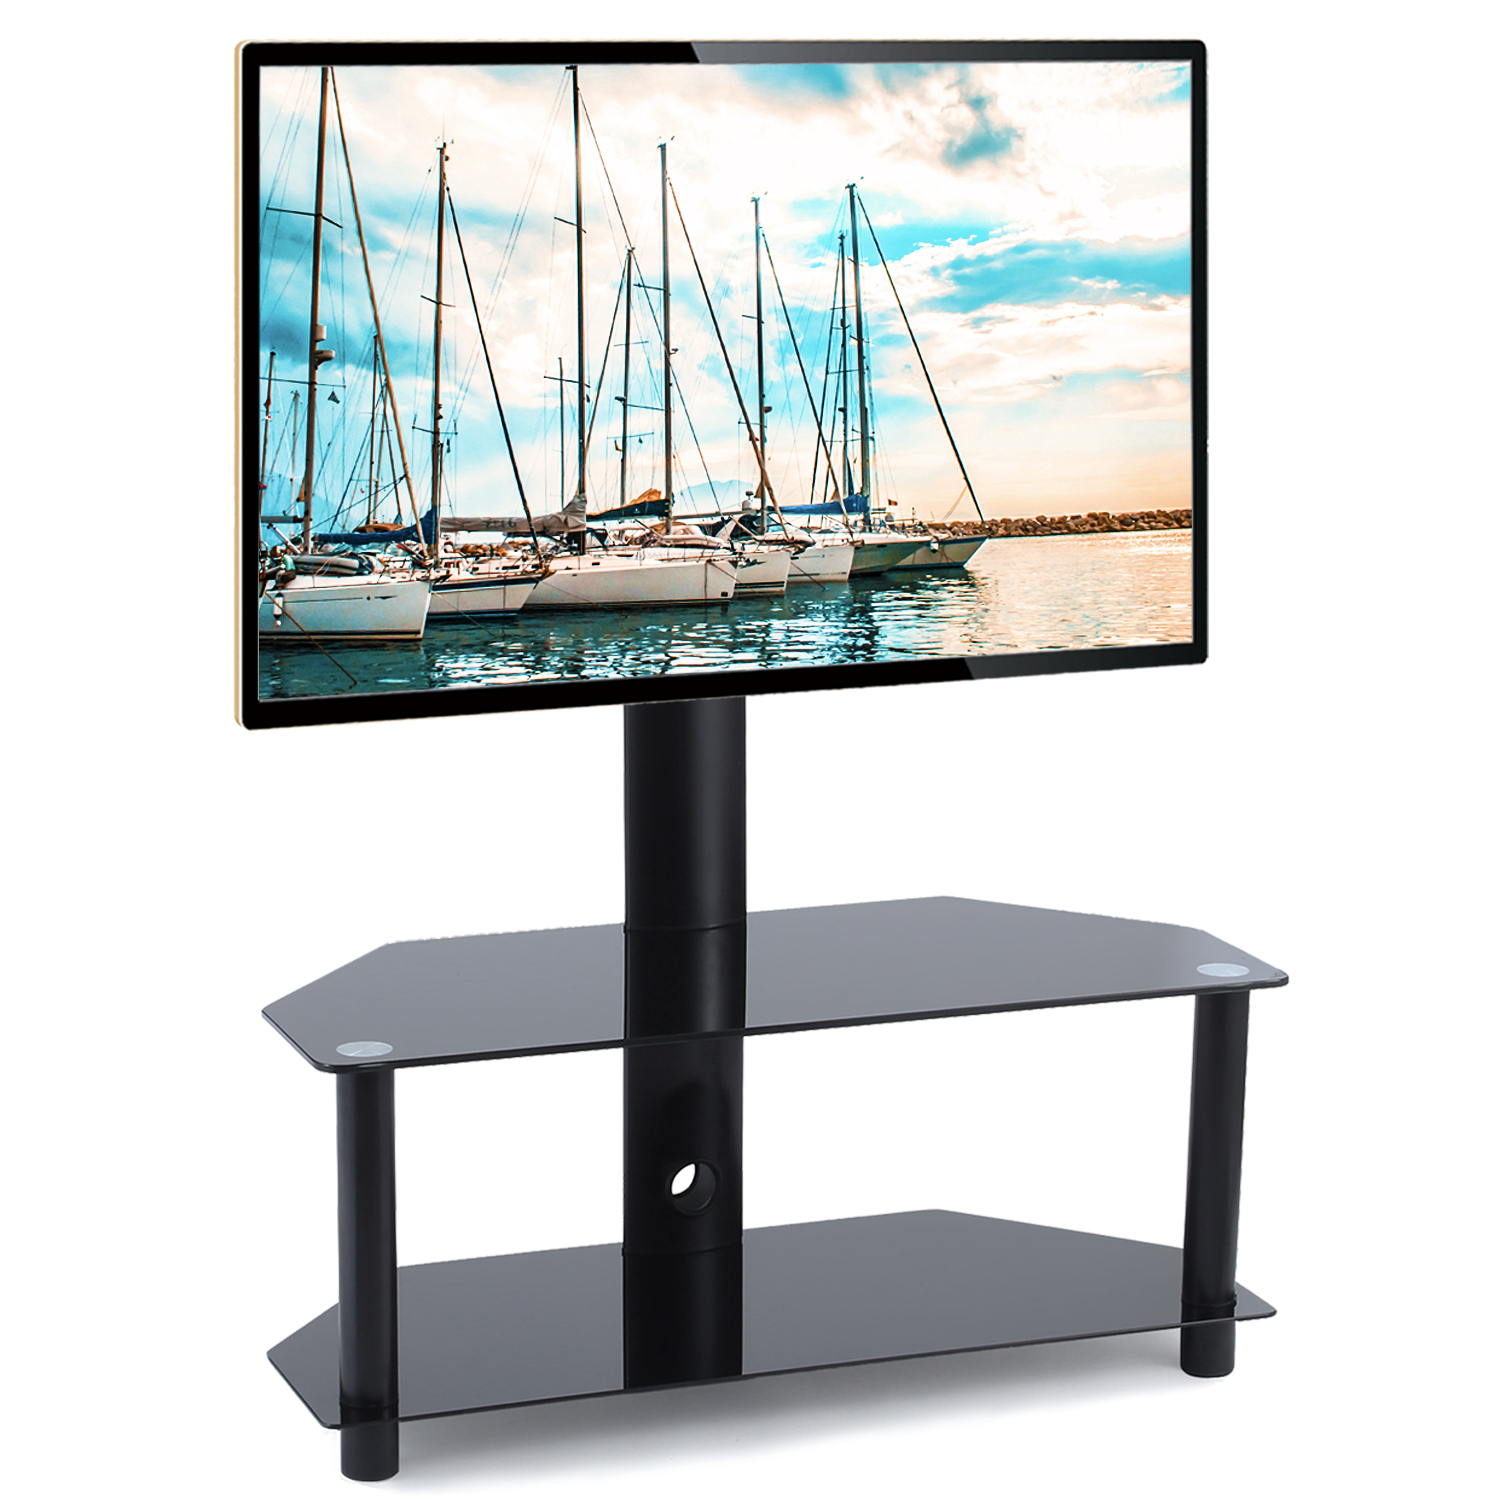 Rfiver Glass Floor Tv Stand With Swivel Mount Height With Swivel Floor Tv Stands Height Adjustable (View 3 of 20)